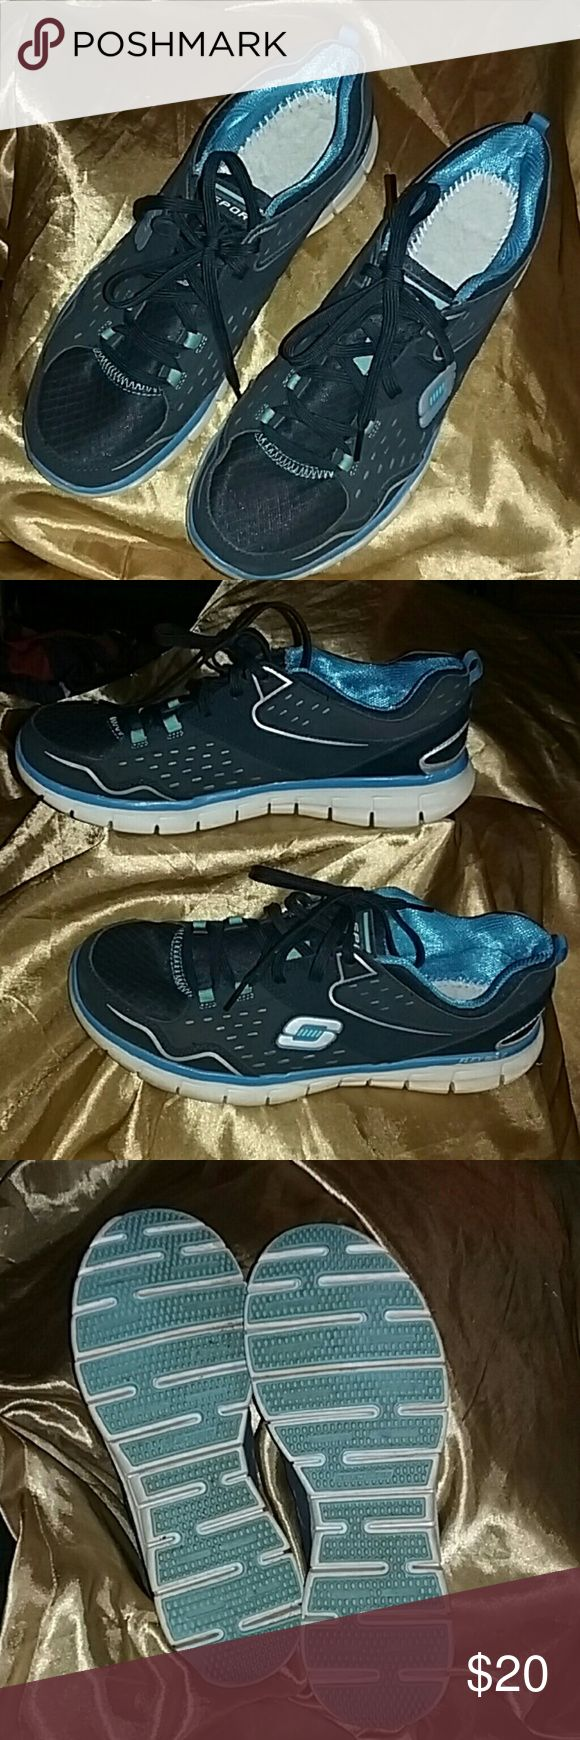 Men's Skechers Tennis Shoes Worn once or twice like new no insoles Skechers Shoes Sneakers